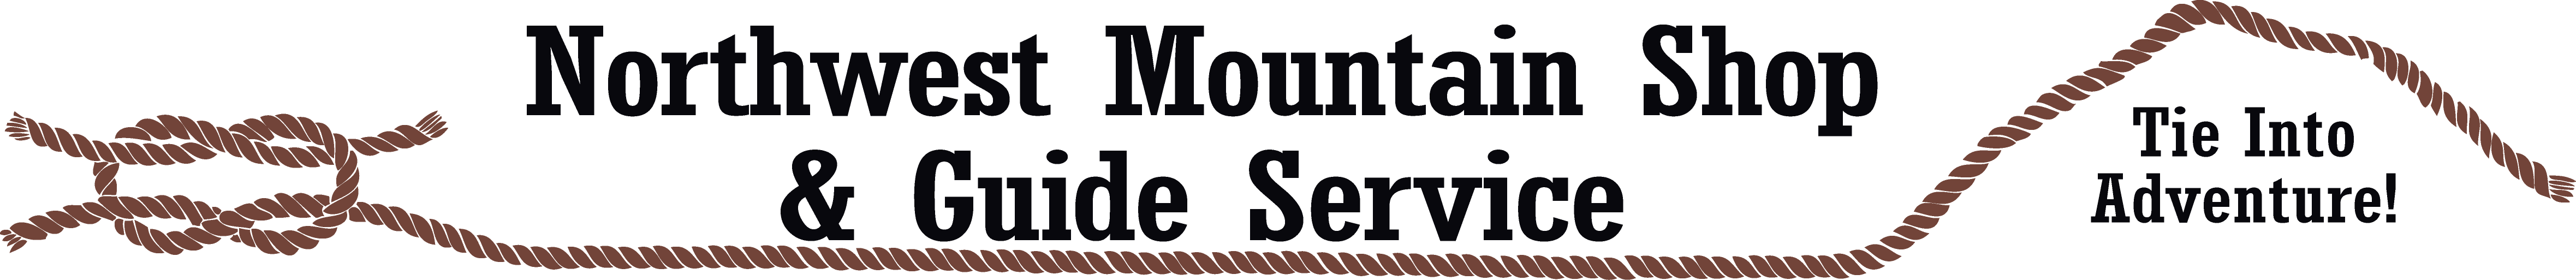 Northwest Mountain Shop & Guide Service |Climbing Mt Baker, Climb Mount Shuksan, Mt Rainier, Eldorado Peak,  Sahale Peak, and Mt Olympus Logo